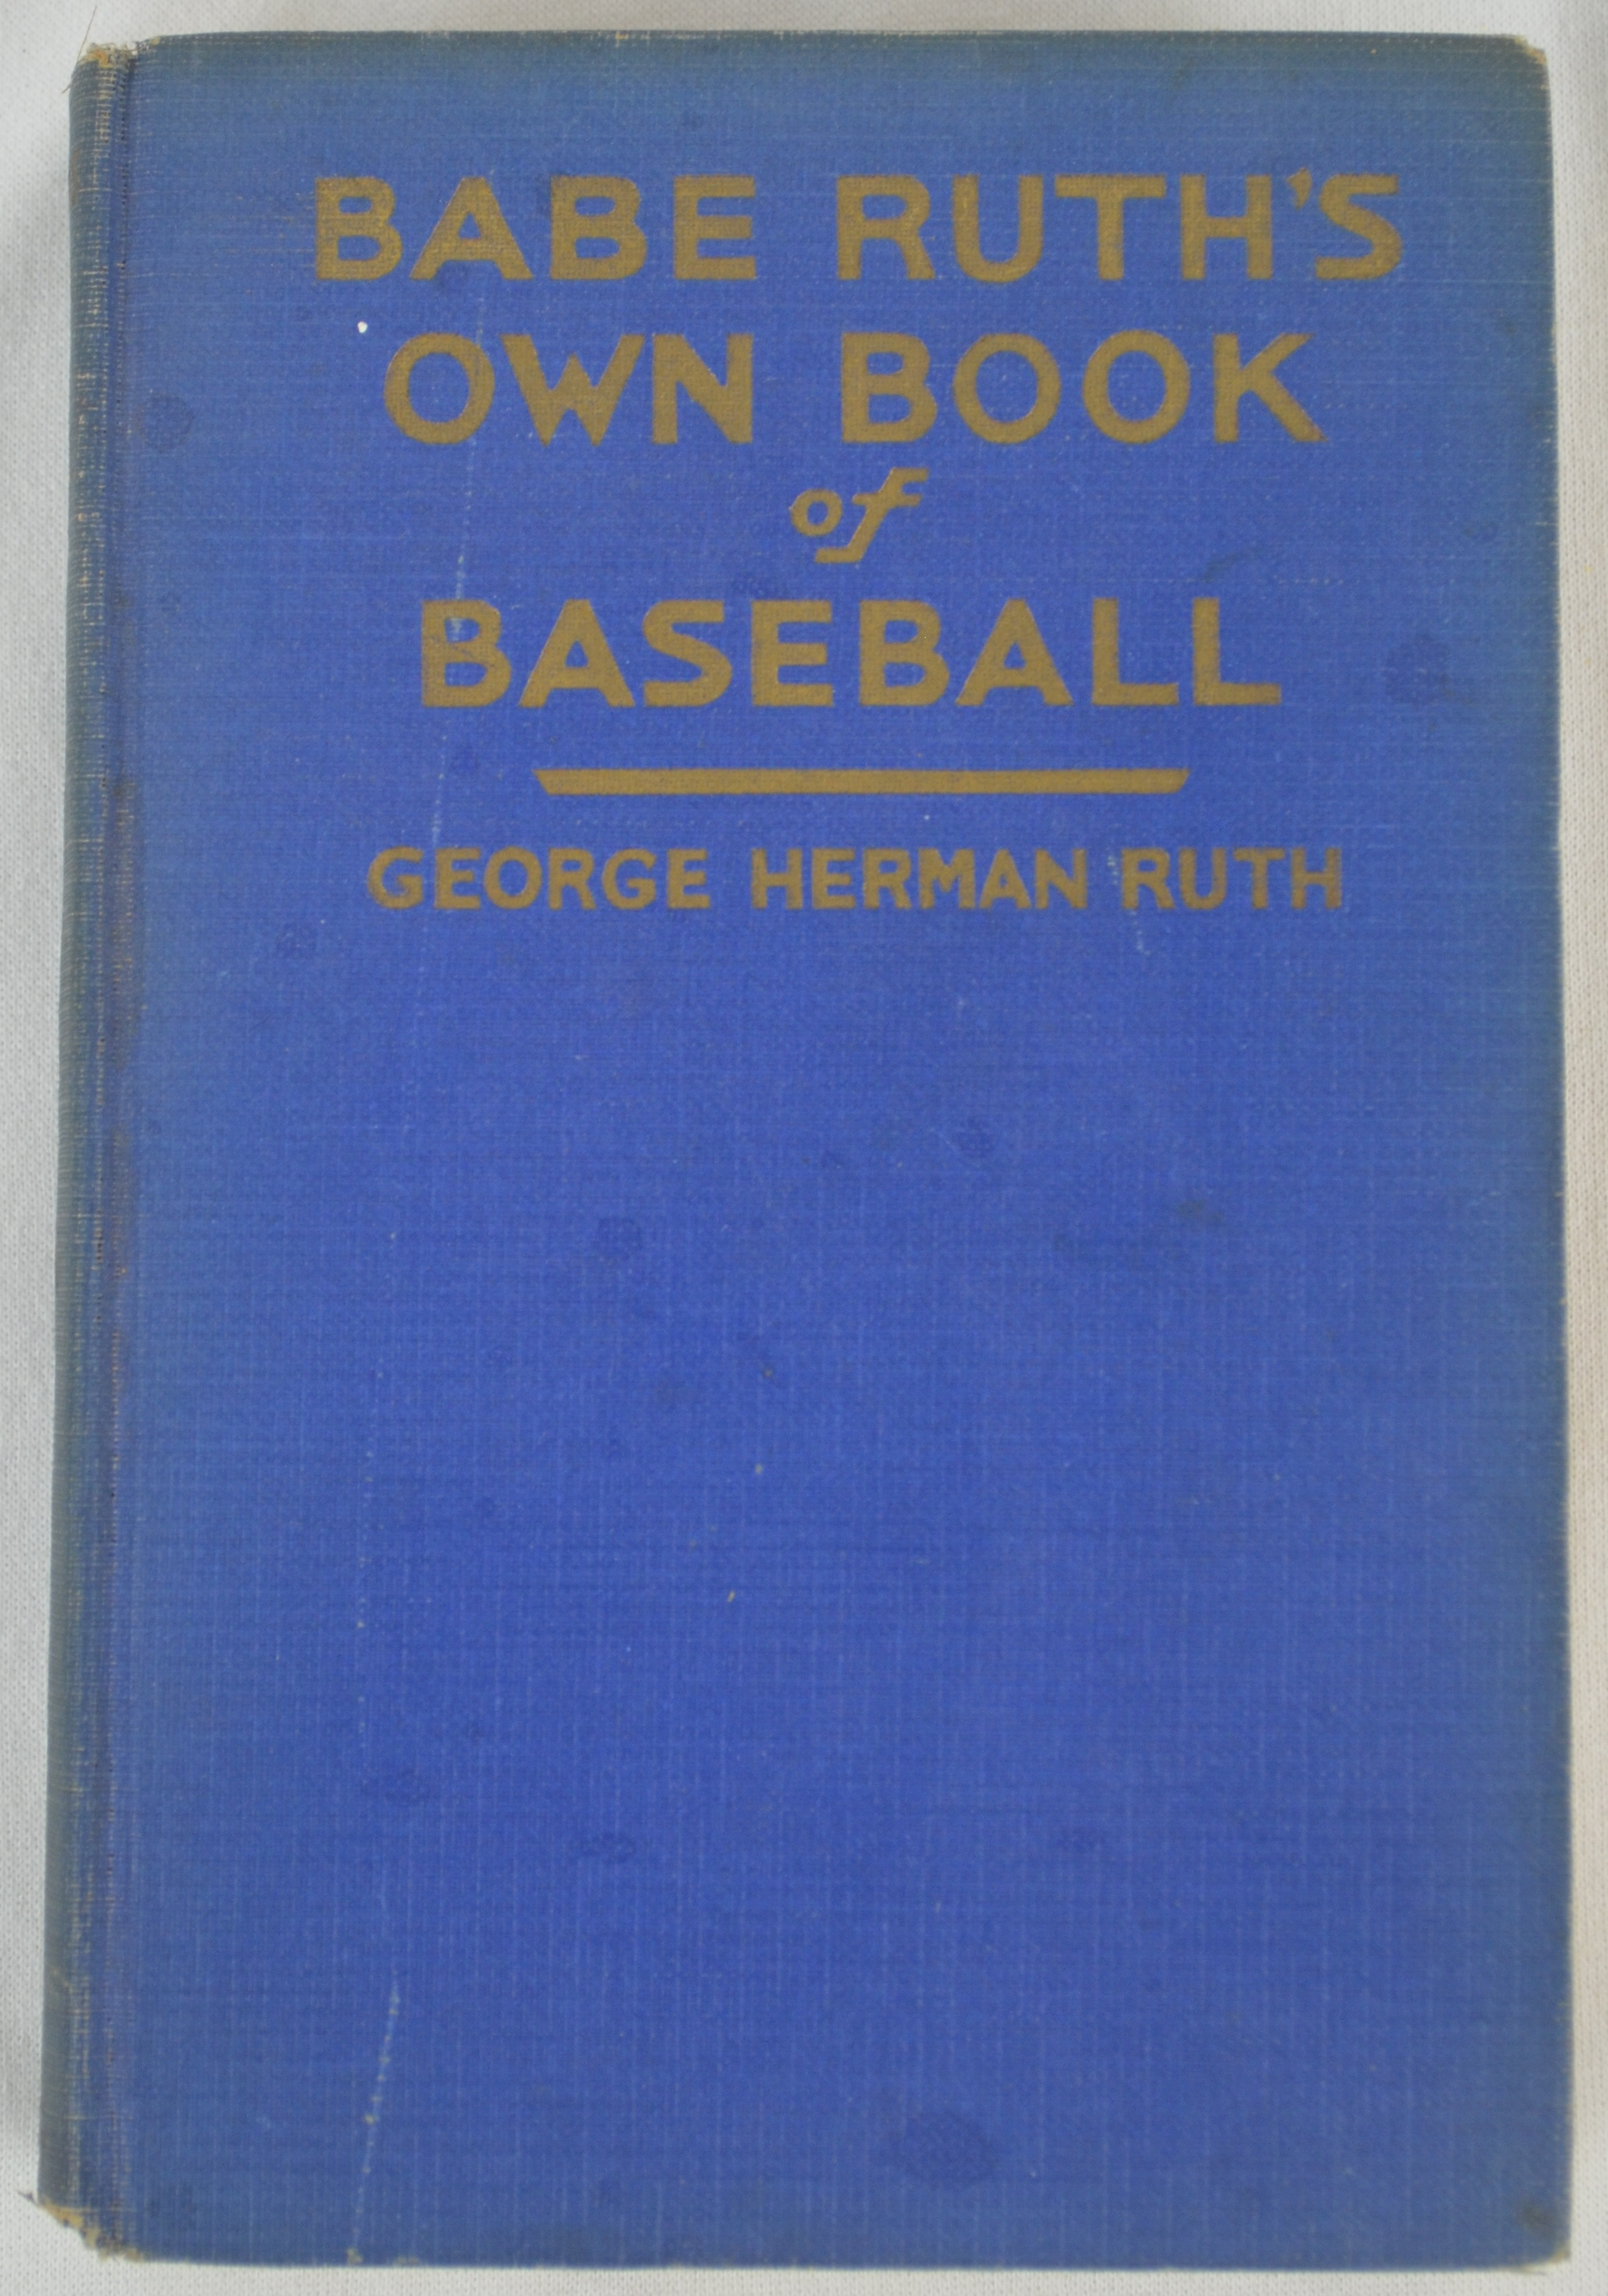 george herman babe ruth essay Babe ruth or also known as george herman ruth jr was born on february 6, 1895, in baltimore, maryland he was raised in a poor neighborhood in baltimore.